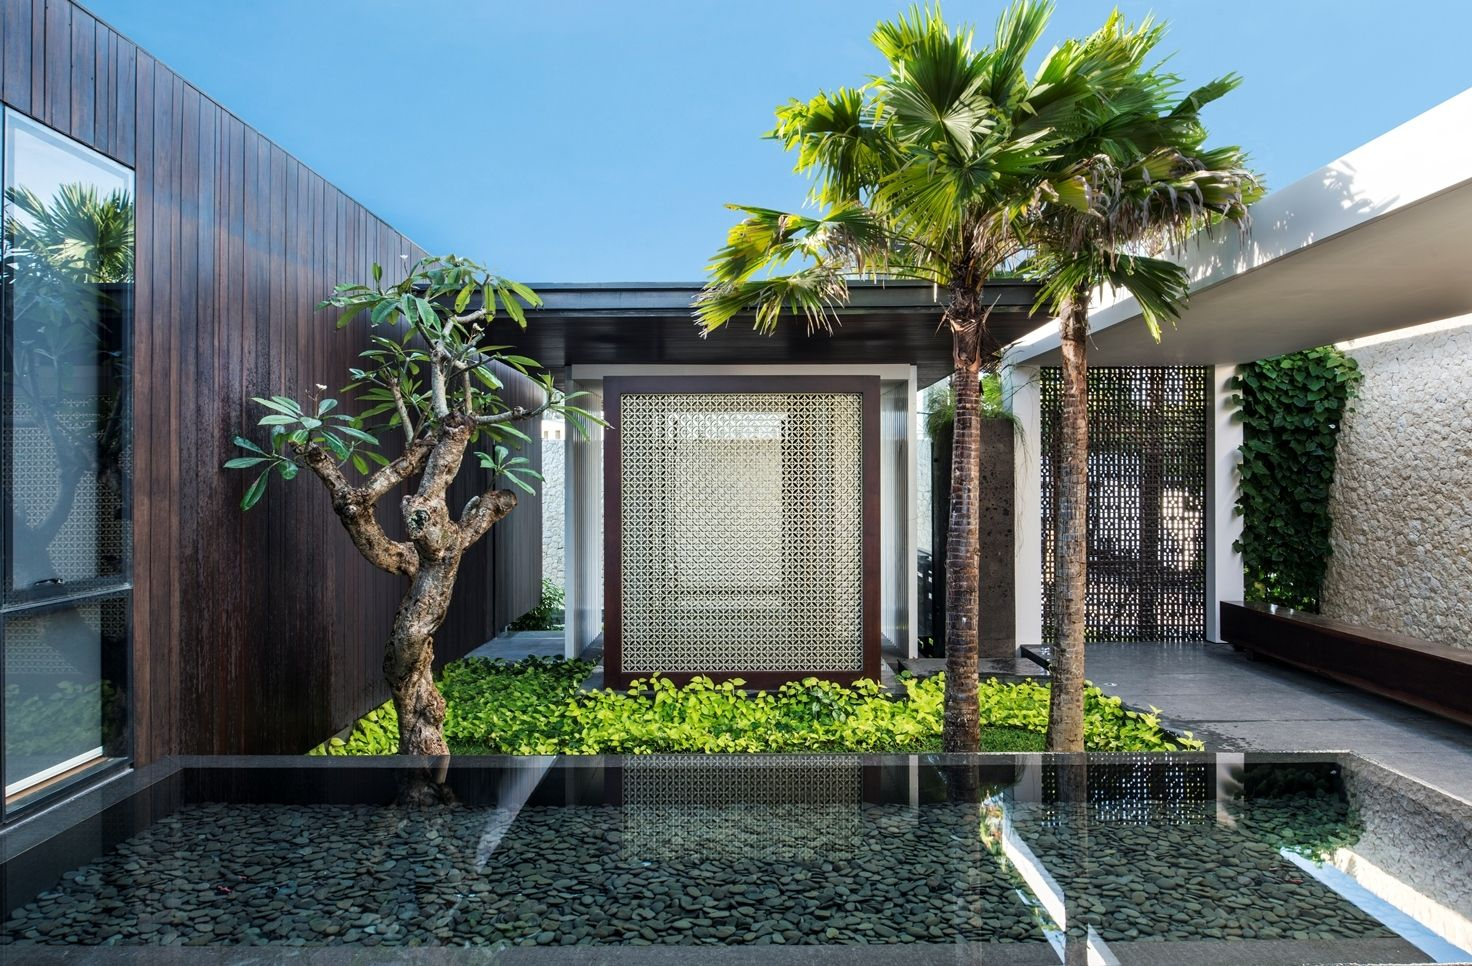 A Transparent House In Bali By Architect Yew Kuan Cheong For Interiors Magazine